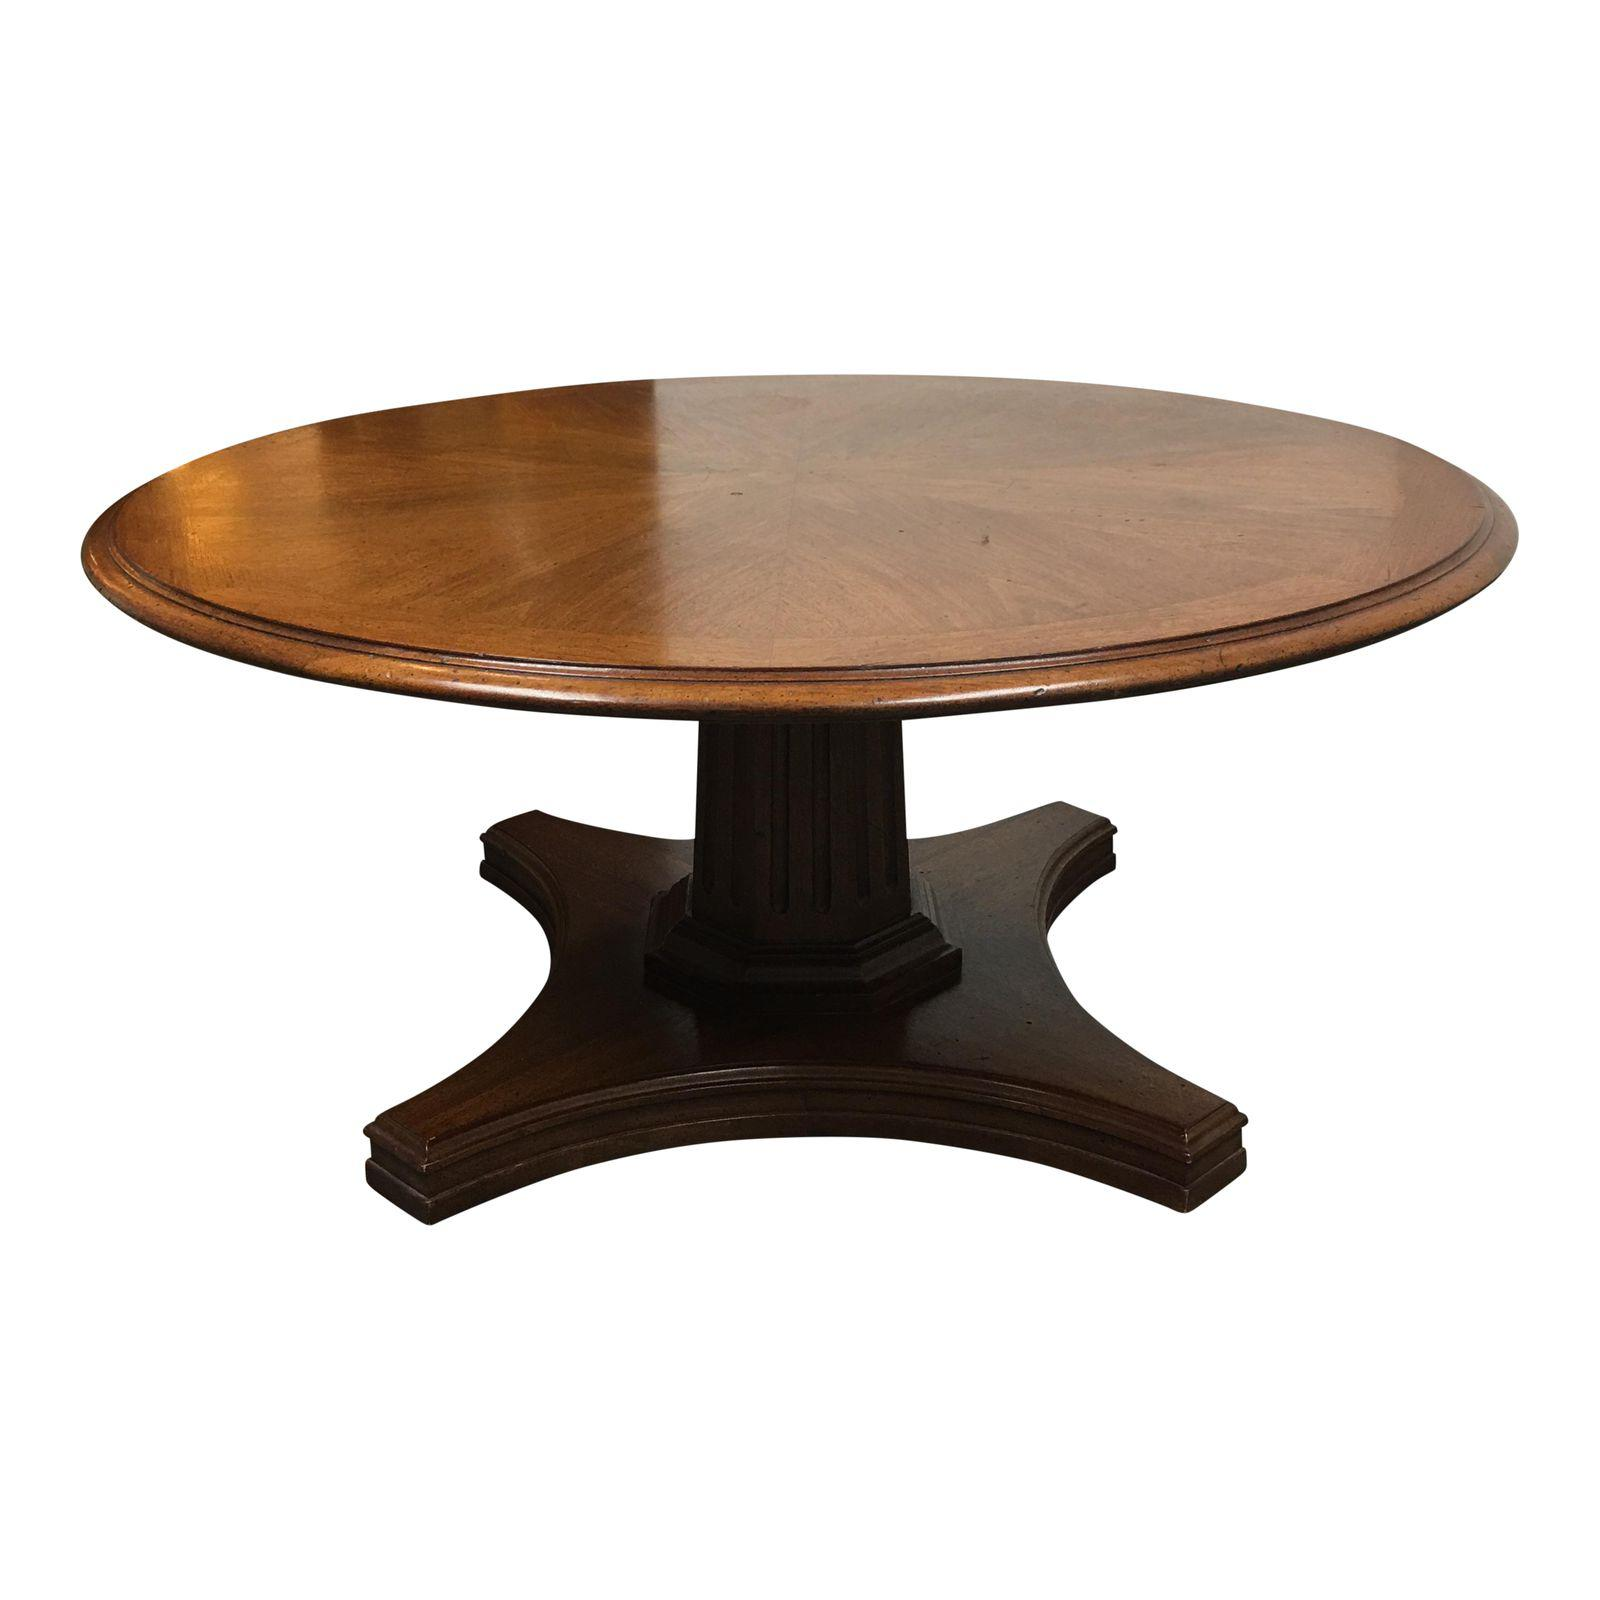 Round Coffee Table Standard Size: Round Adjustable Height Table From Coffee To Dining